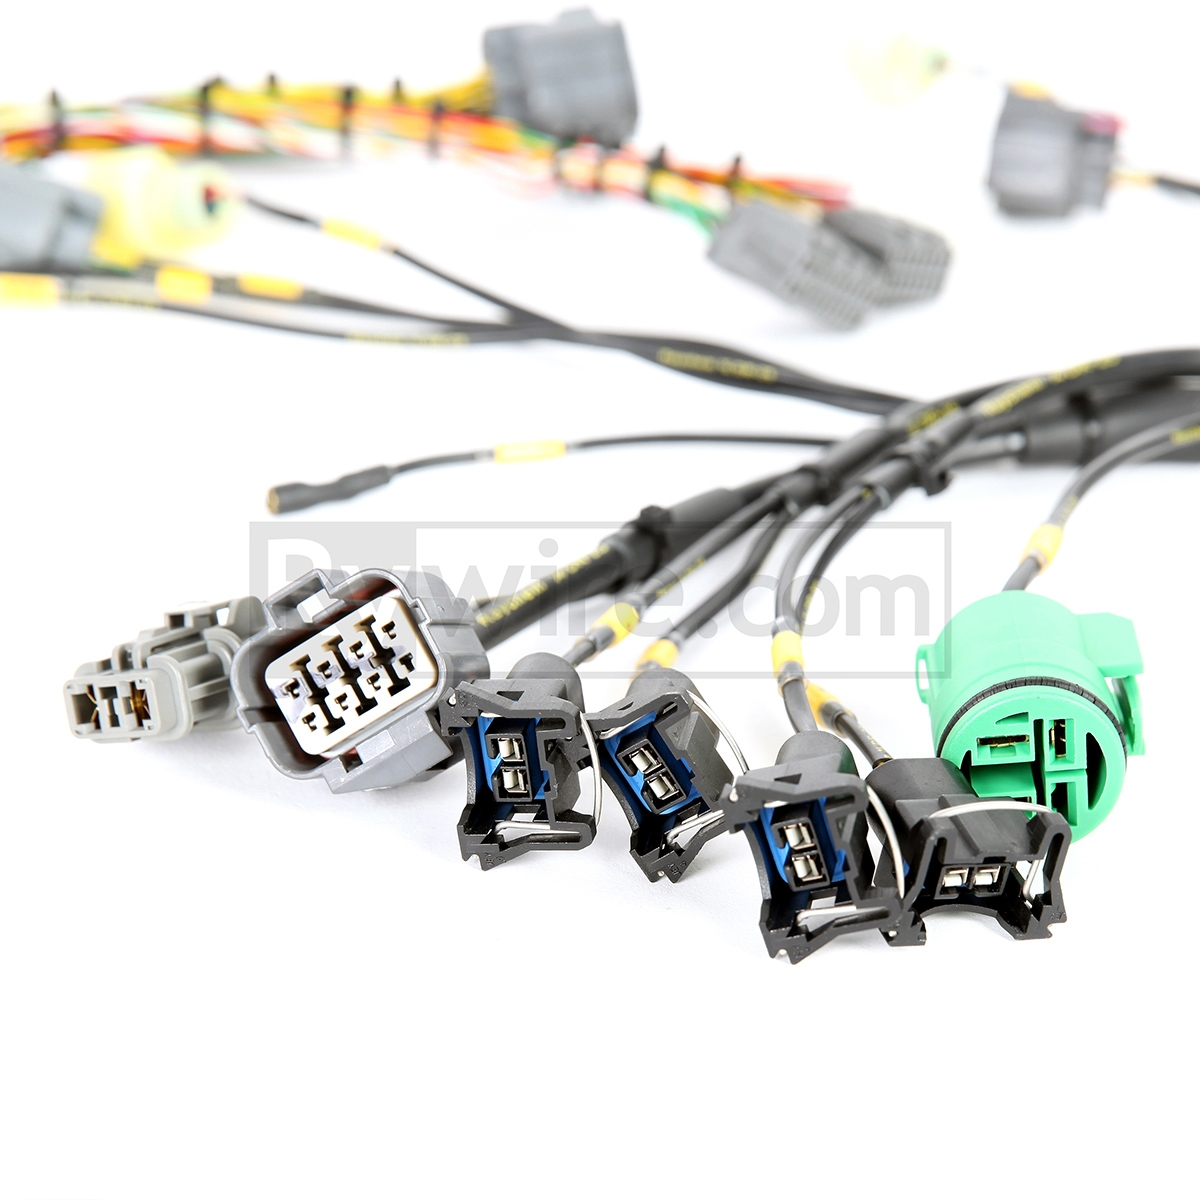 small resolution of honda wiring harness connectors wiring diagram third level rh 19 1 16 jacobwinterstein com chase bays wiring harness chase bays wiring harness